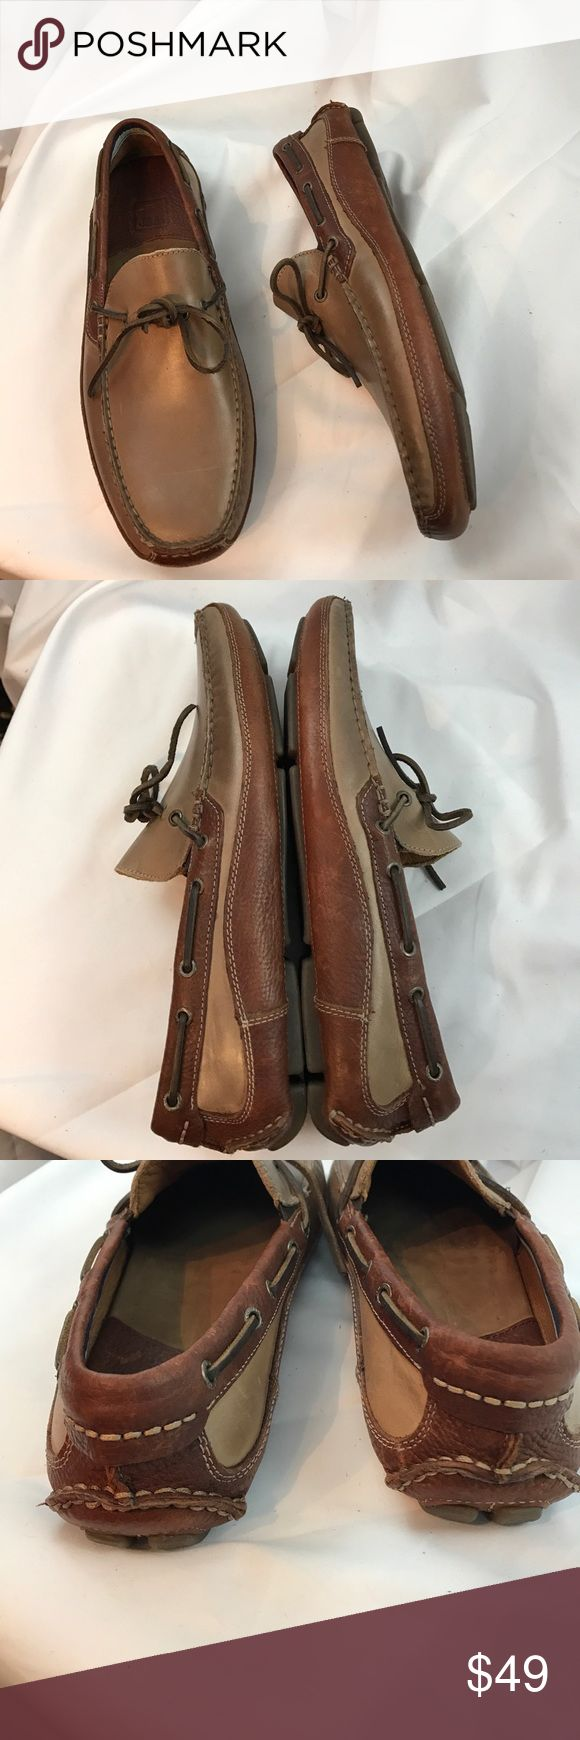 Johnston & Murphy sz9.5 leather boat shoe loafers Excellent used condition Johnston & Murphy sz9.5 leather boat shoe loafers...some scuffs on leather but overall in great shape...worn only twice... Johnston & Murphy Shoes Loafers & Slip-Ons